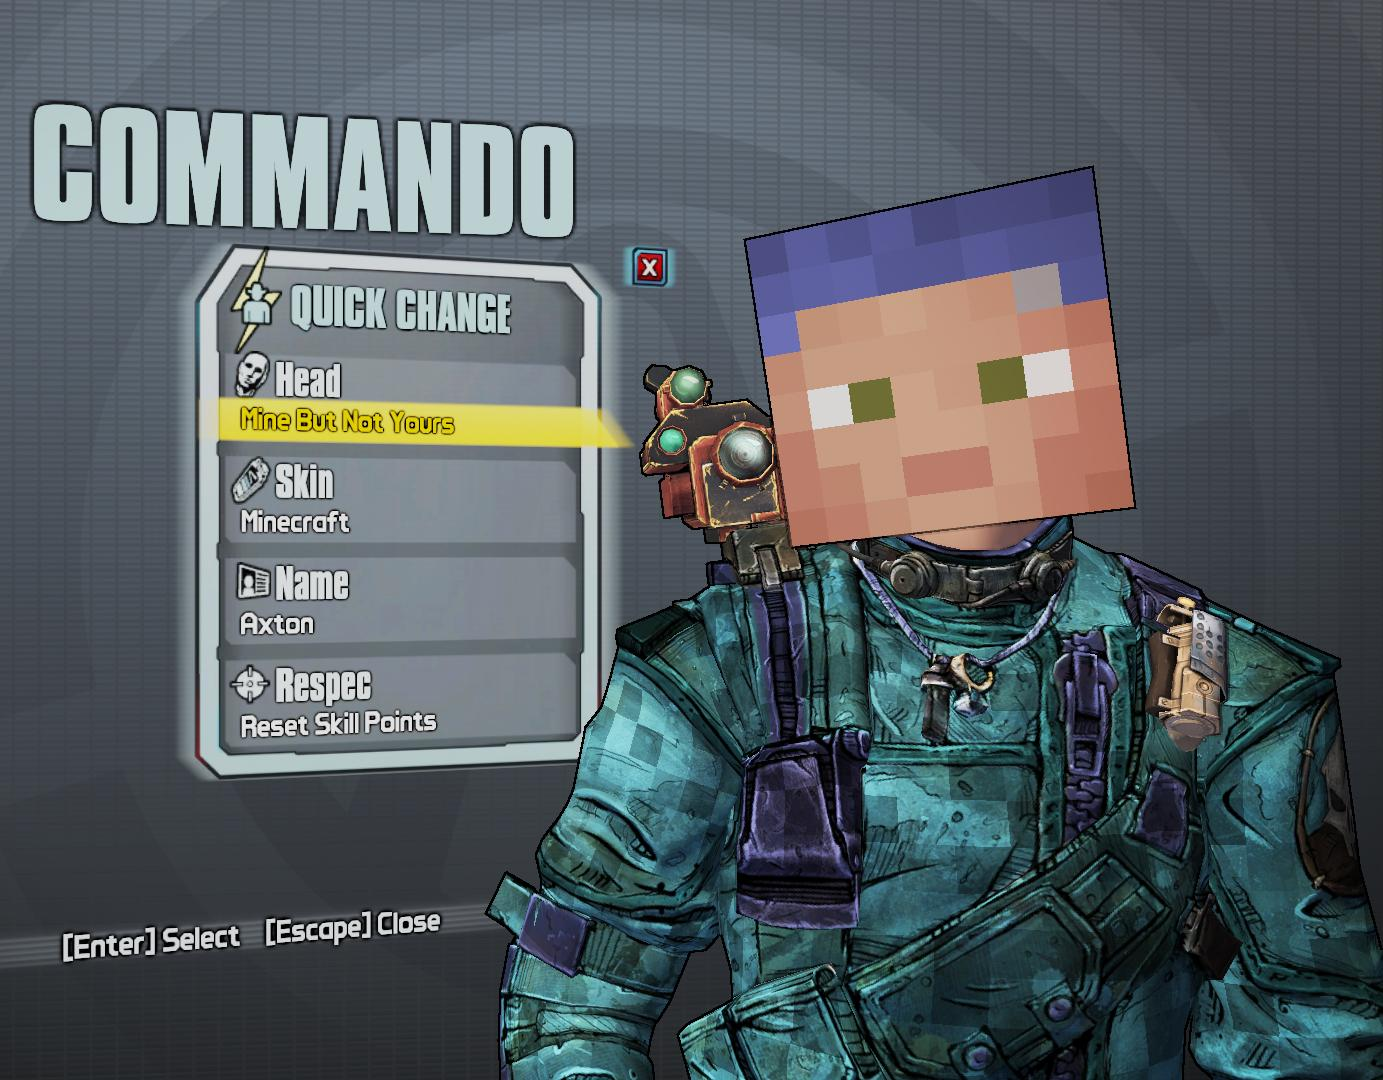 Get your Minecraft on in Borderlands 2